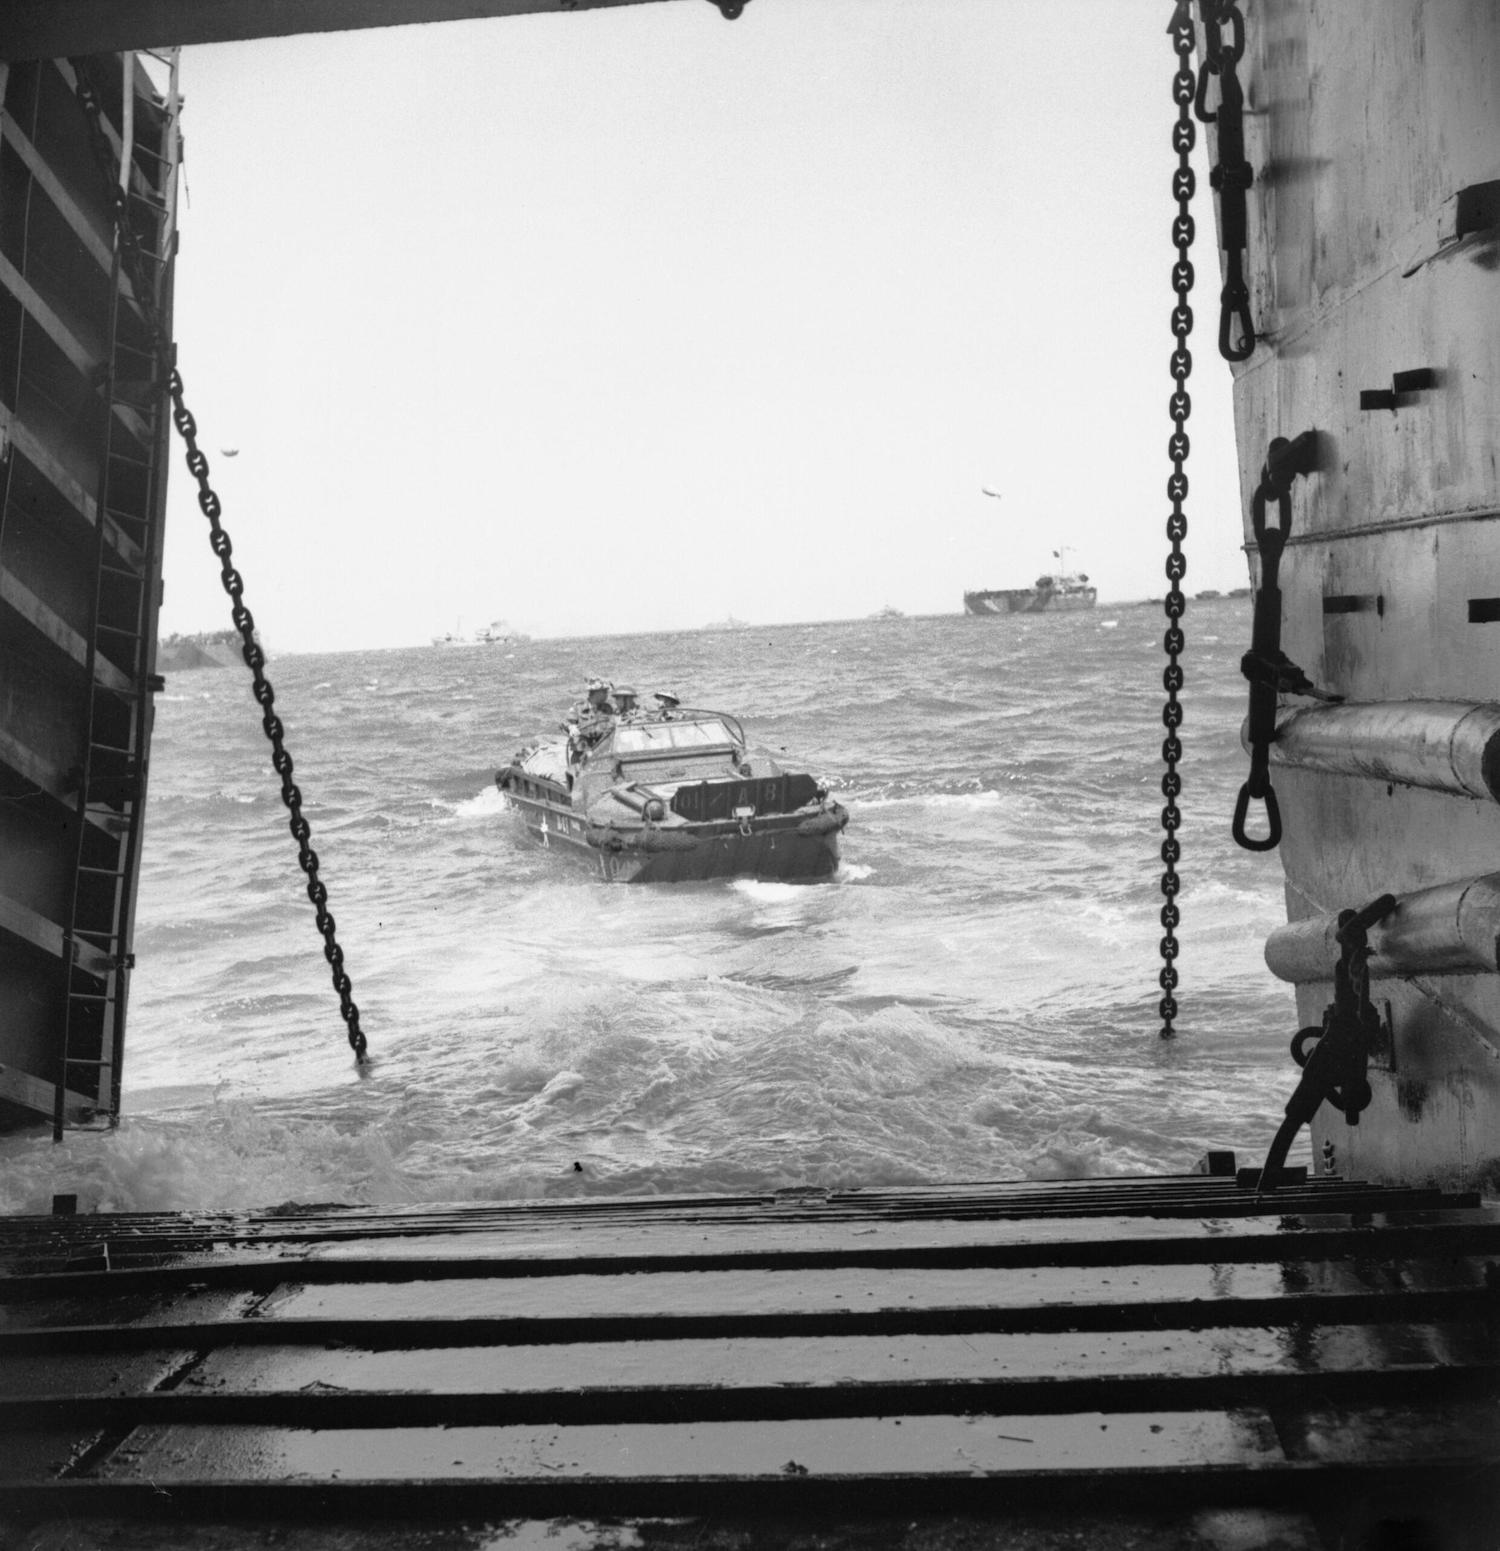 gmc dukw in water drives off ship ramp